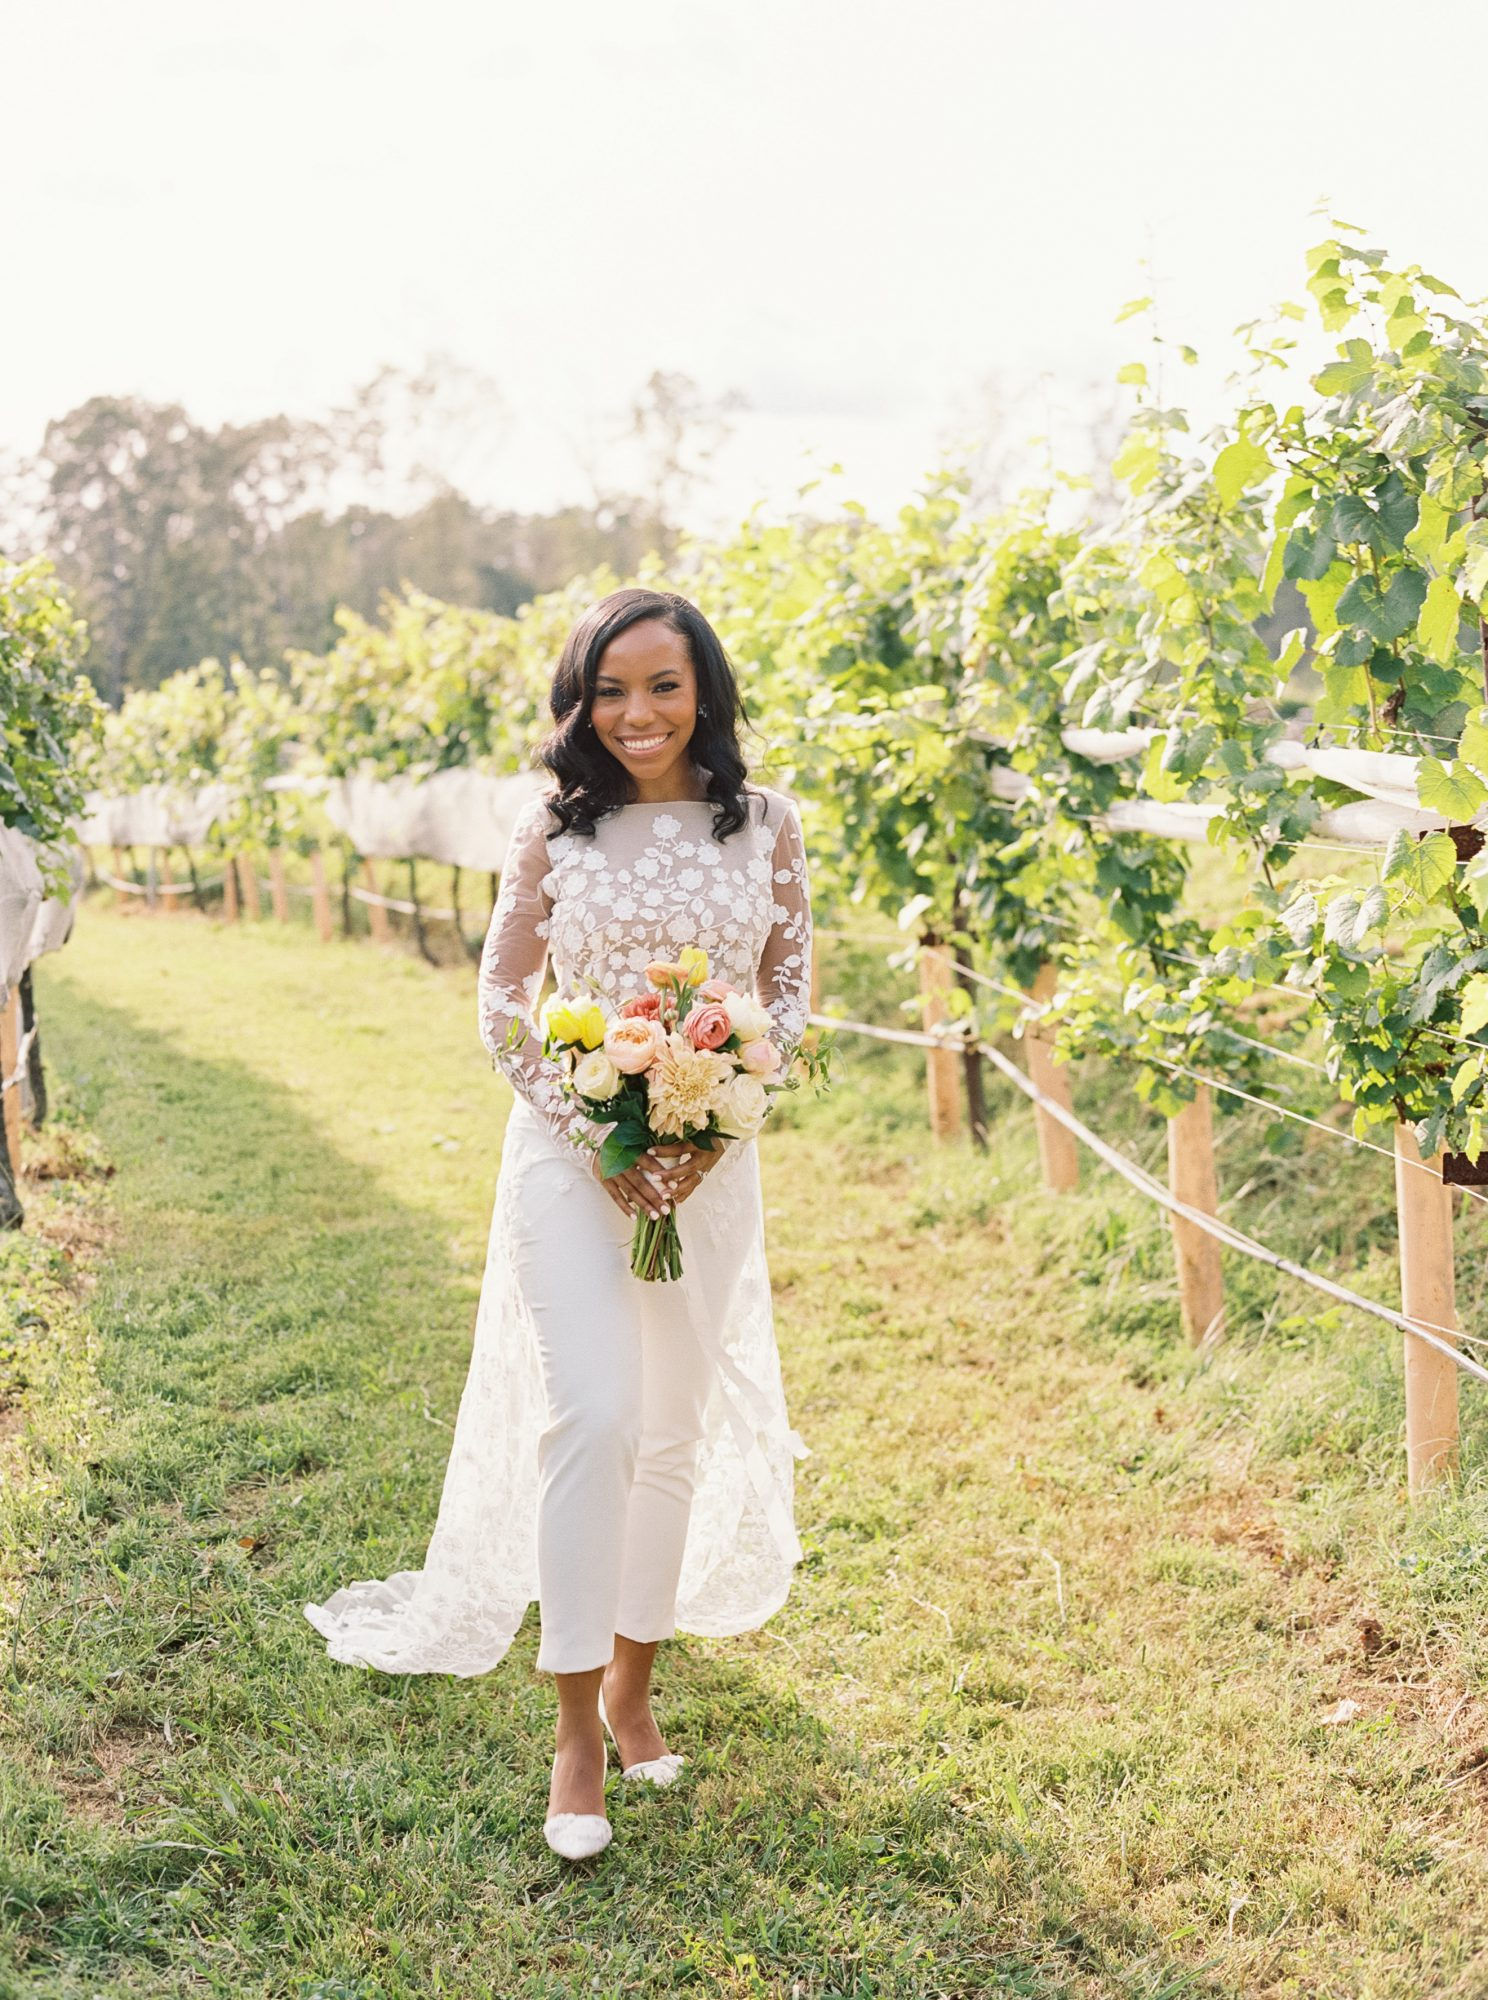 cayla david wedding bride wearing a white jumpsuit and holding a colorful bouquet at the outdoor winery venue